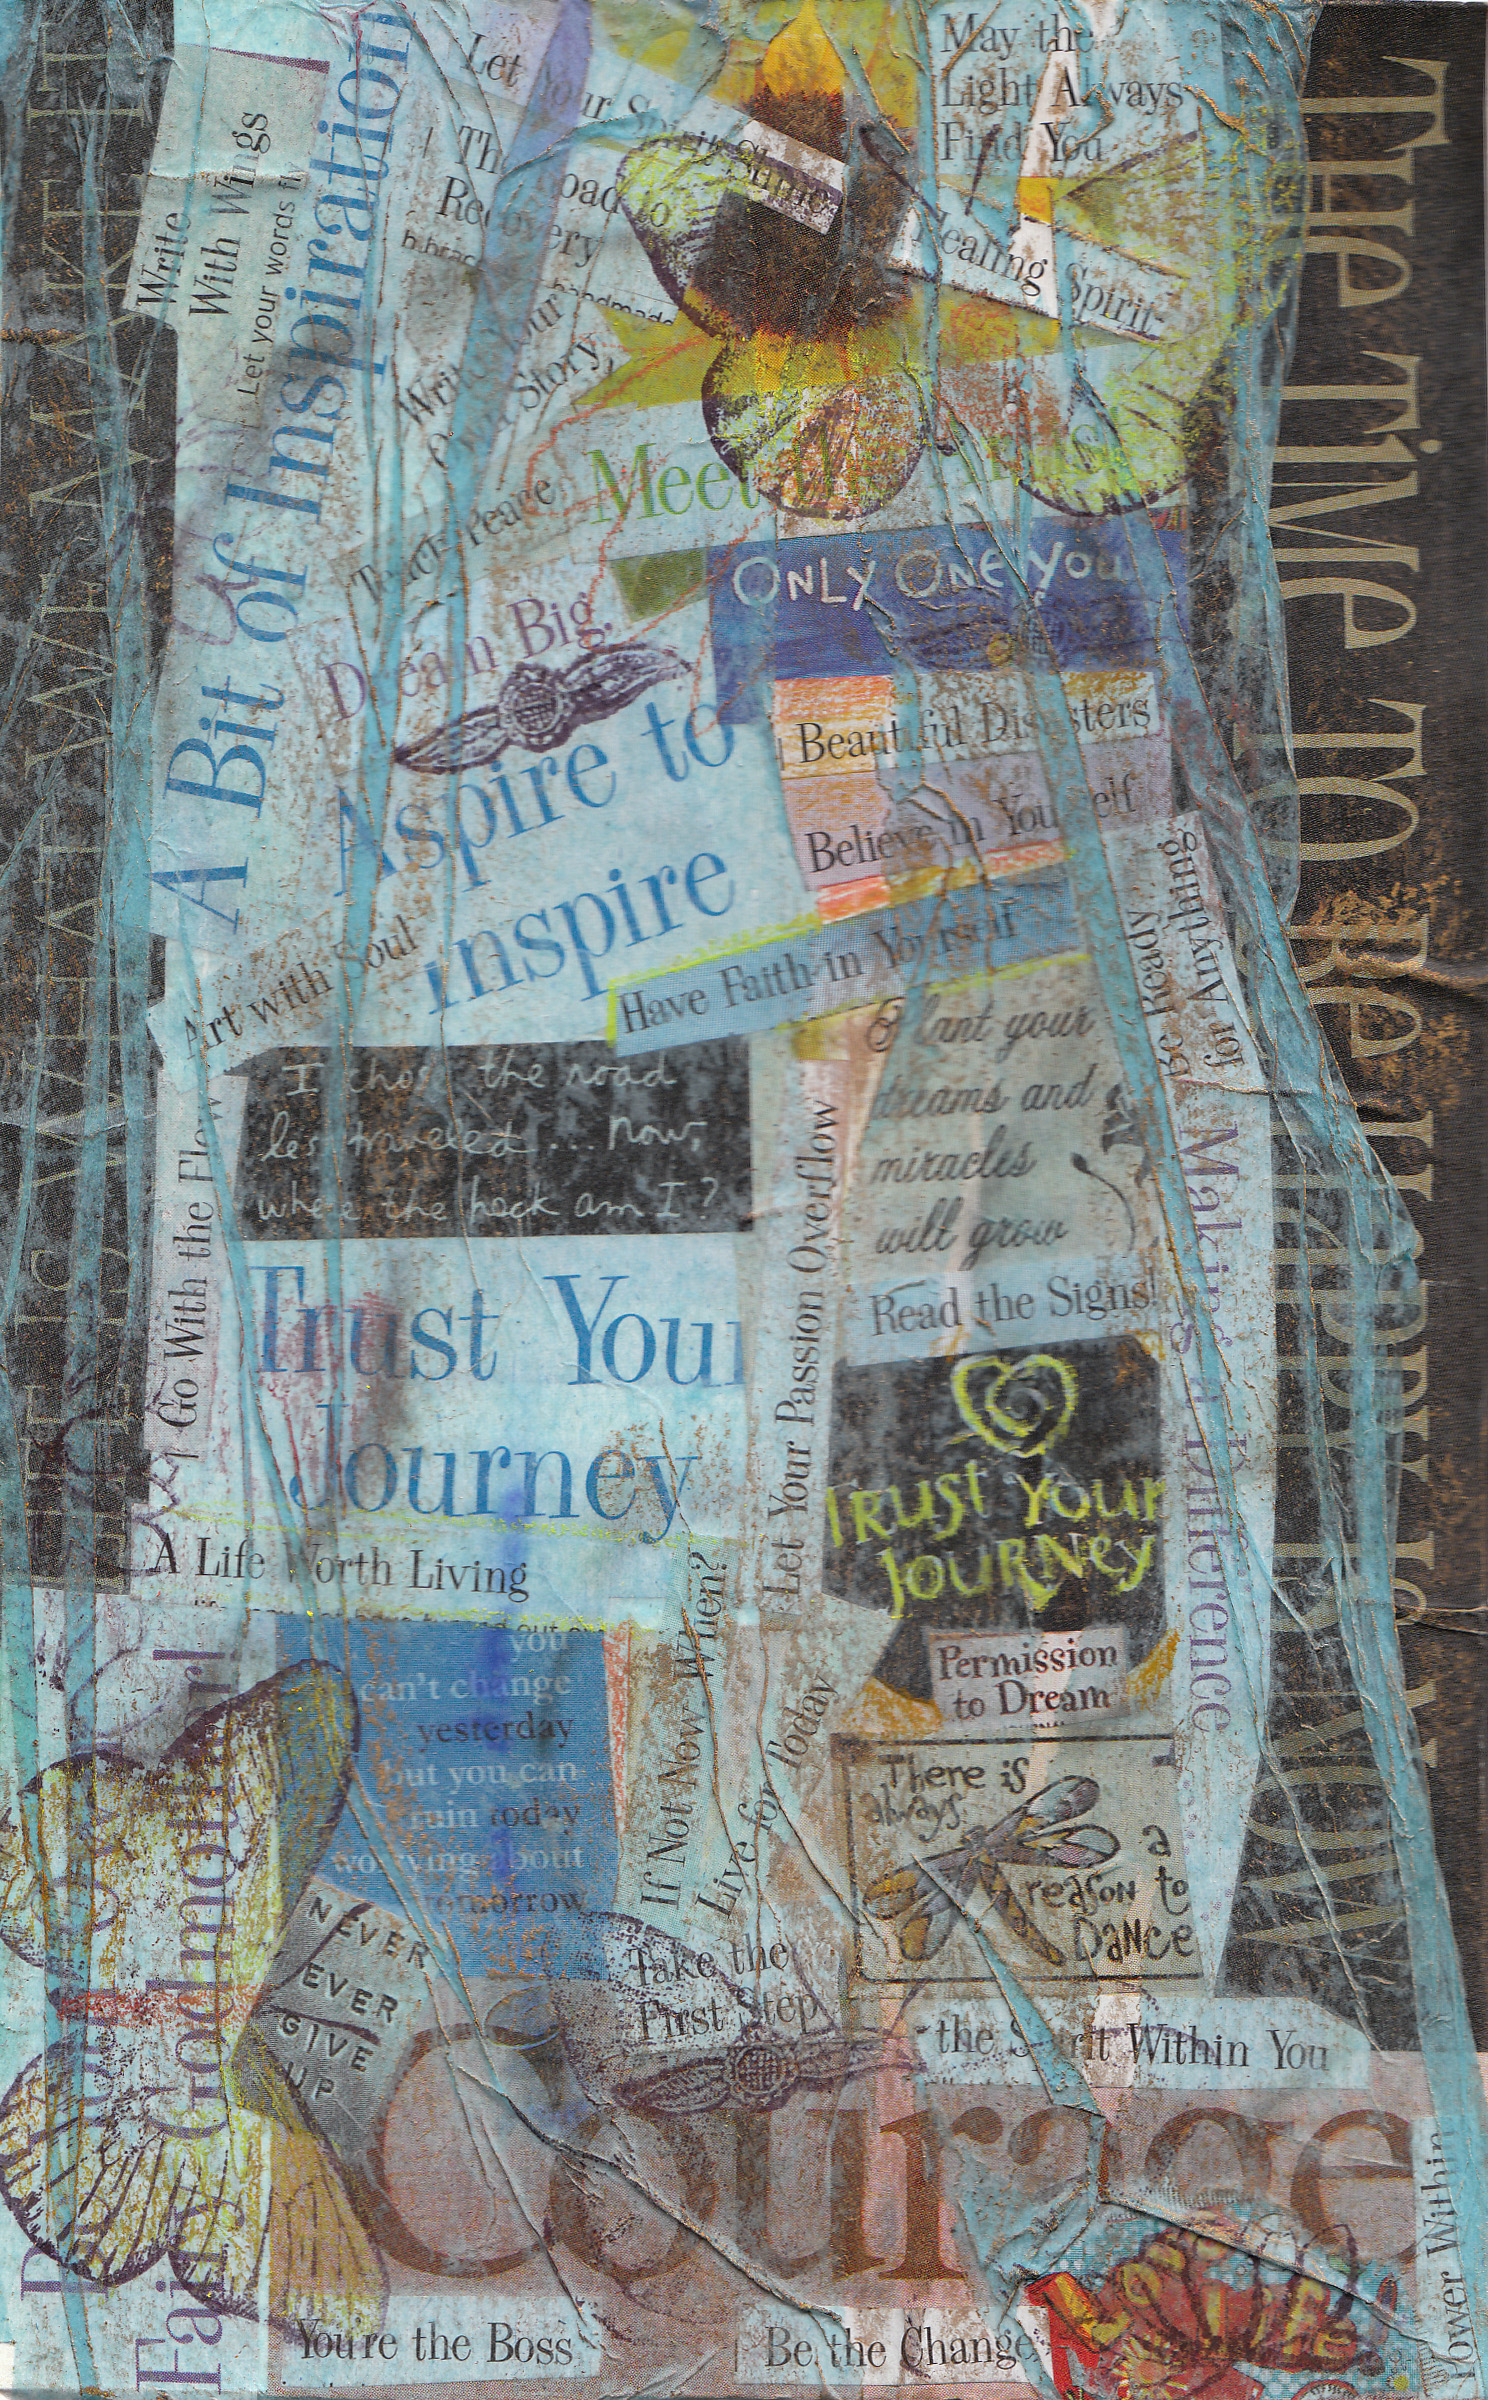 My Trial of Collage Therapy